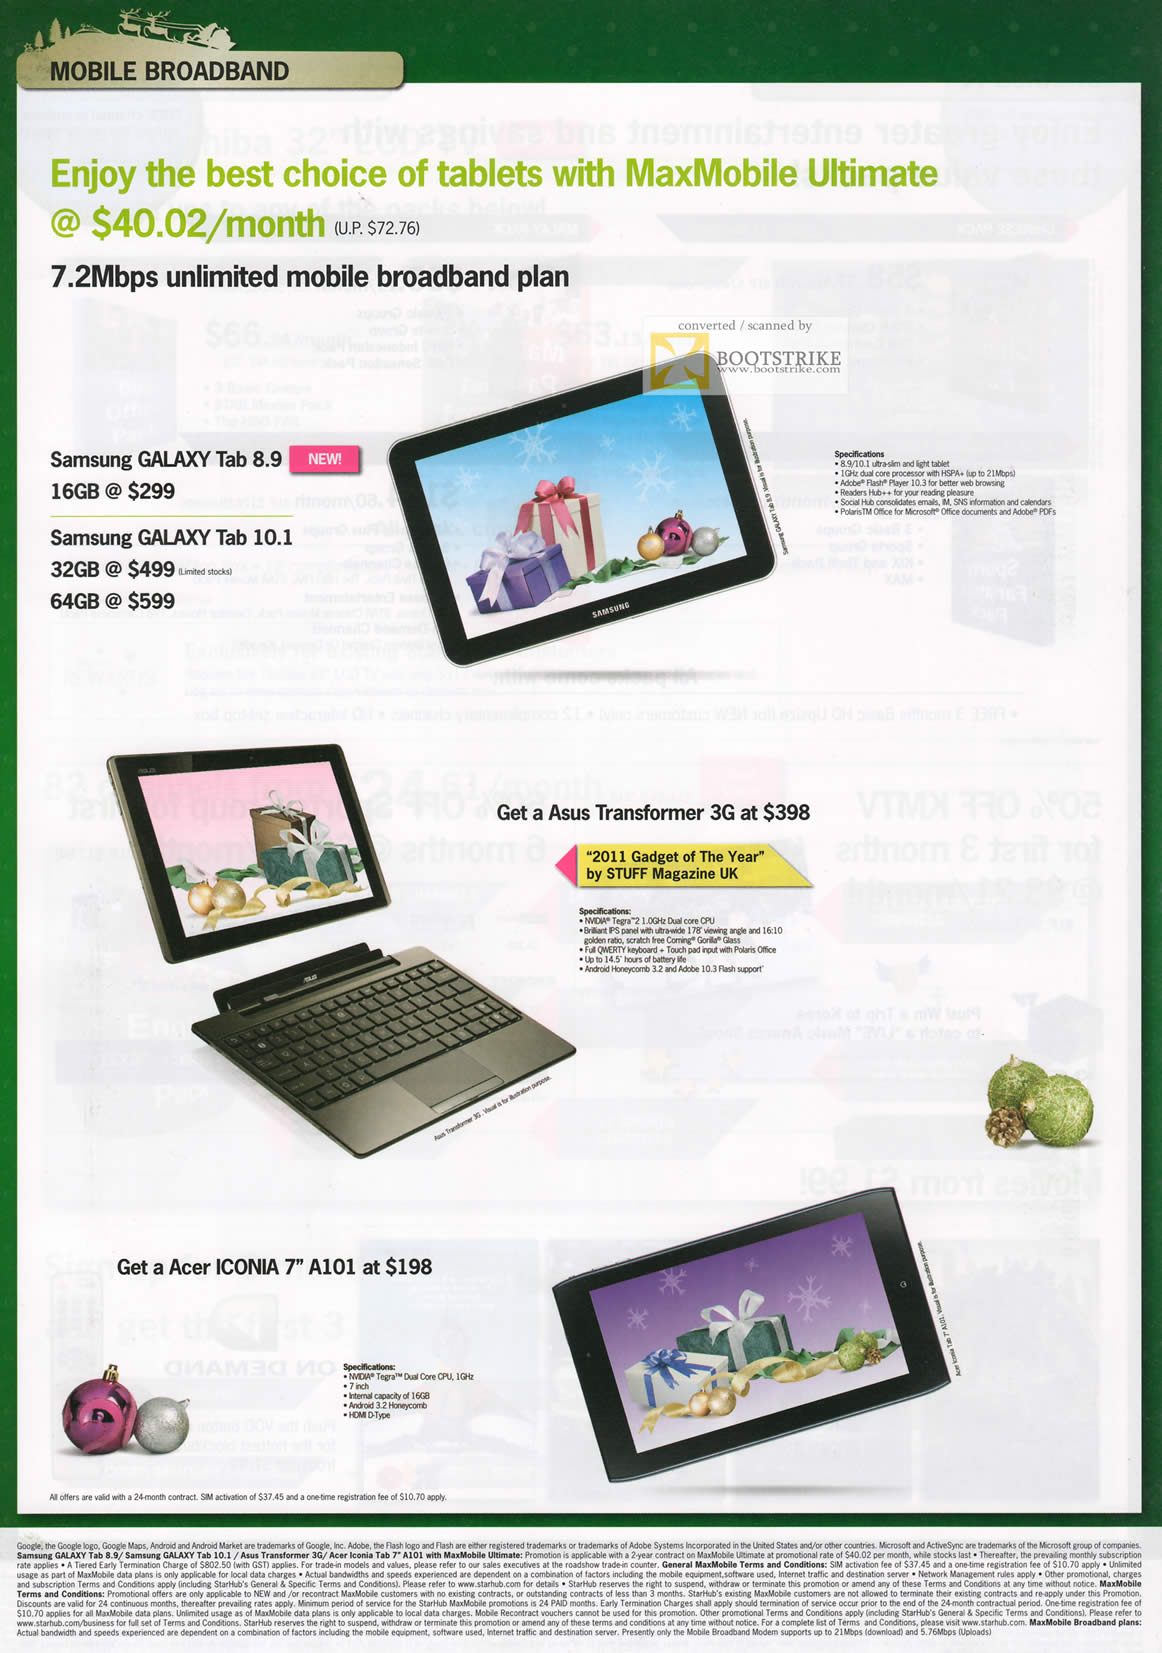 SITEX 2011 price list image brochure of Starhub Mobile Broadband Tablet MaxMobile Ultimate, Samsung Galaxy Tab 8.9, ASUS Transformer 3G, Acer Iconia A101